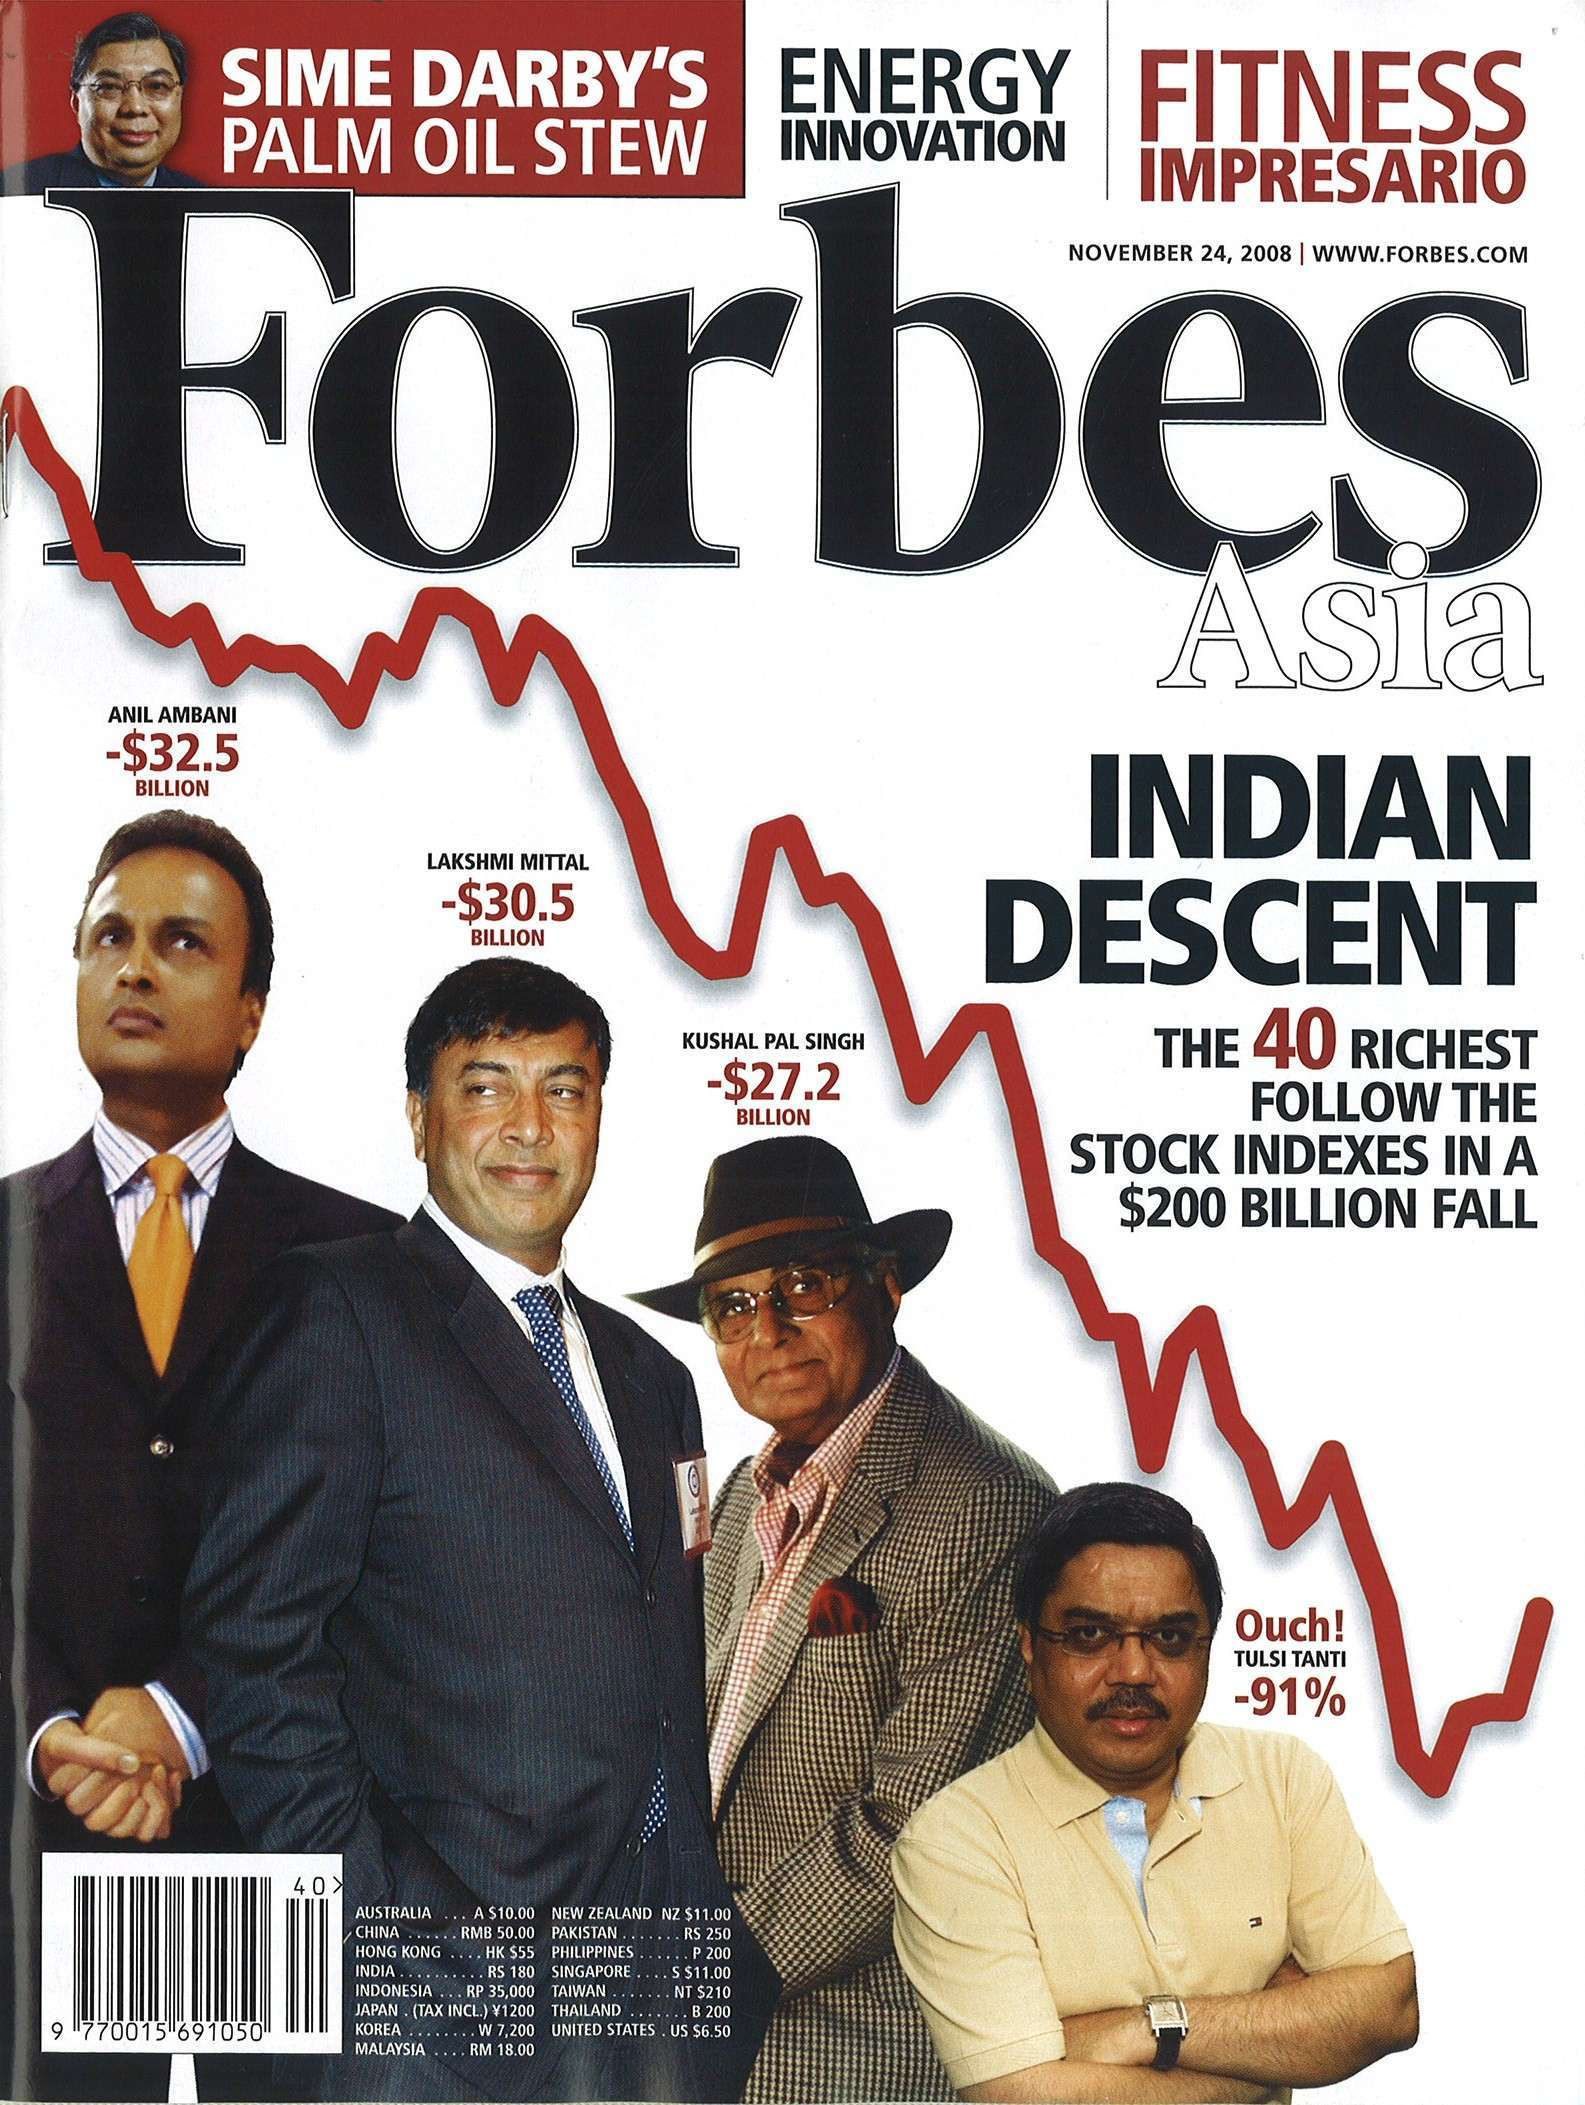 Mukesh pips L N Mittal to become richest Indian - Times of India